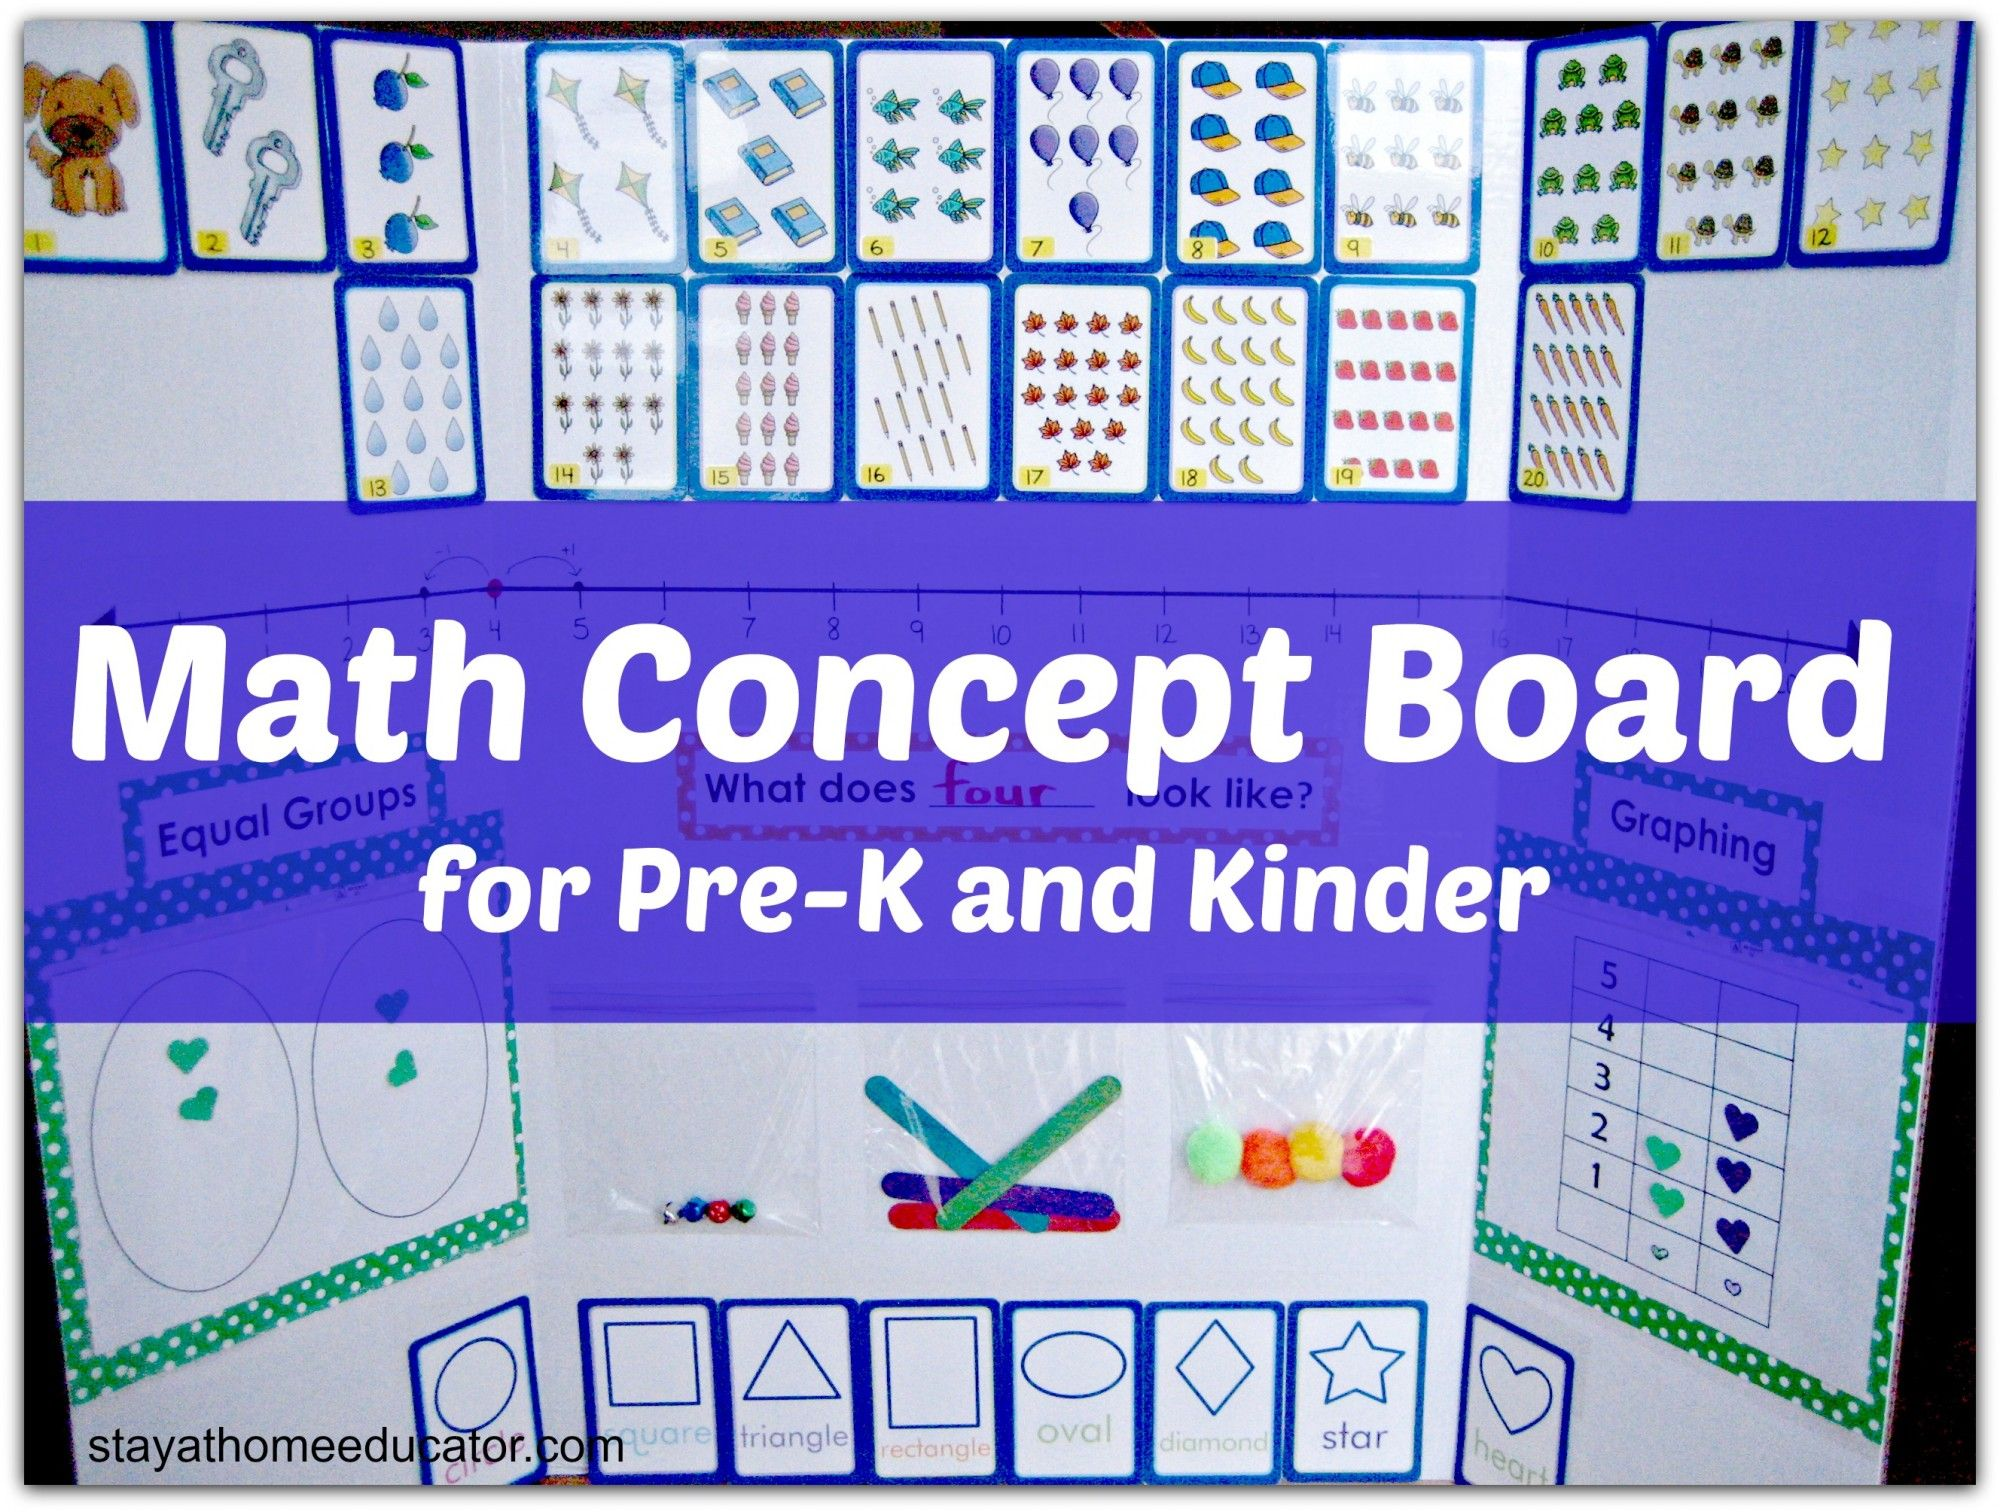 Math Concpet Board for Preschool and Kindergarten | Kind